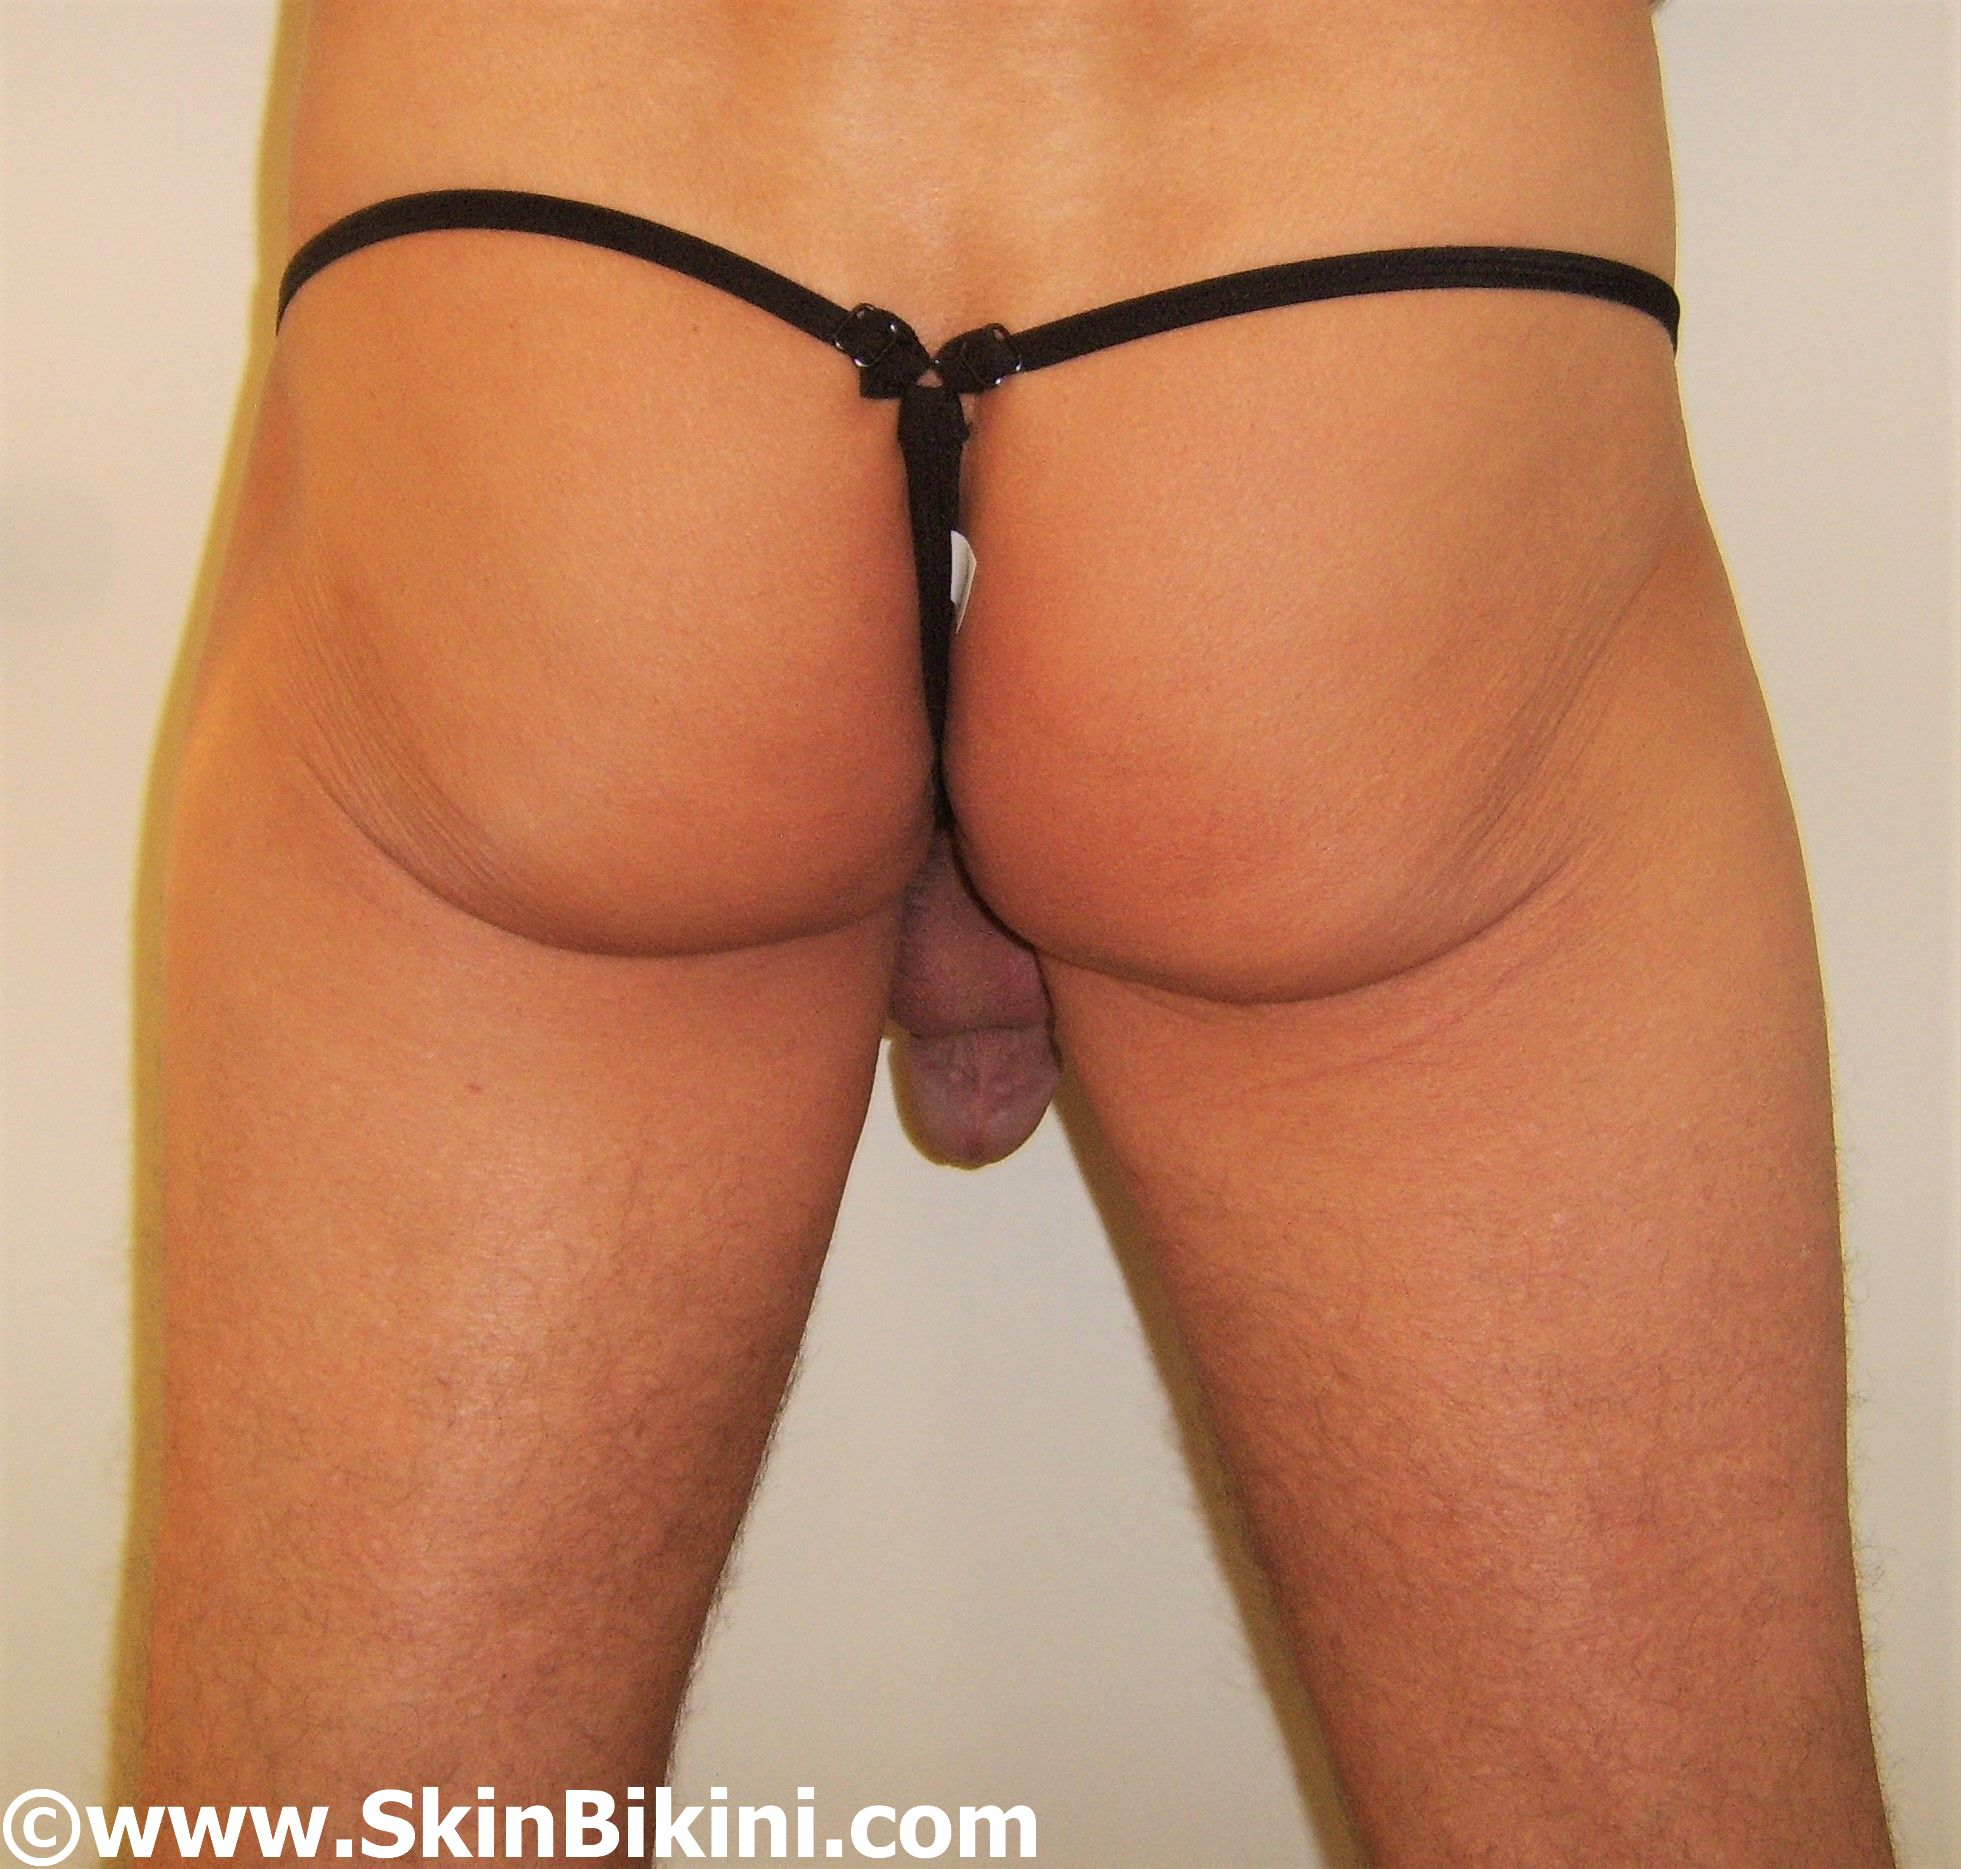 men's see-thru cock ring bikini thong in yellow front view